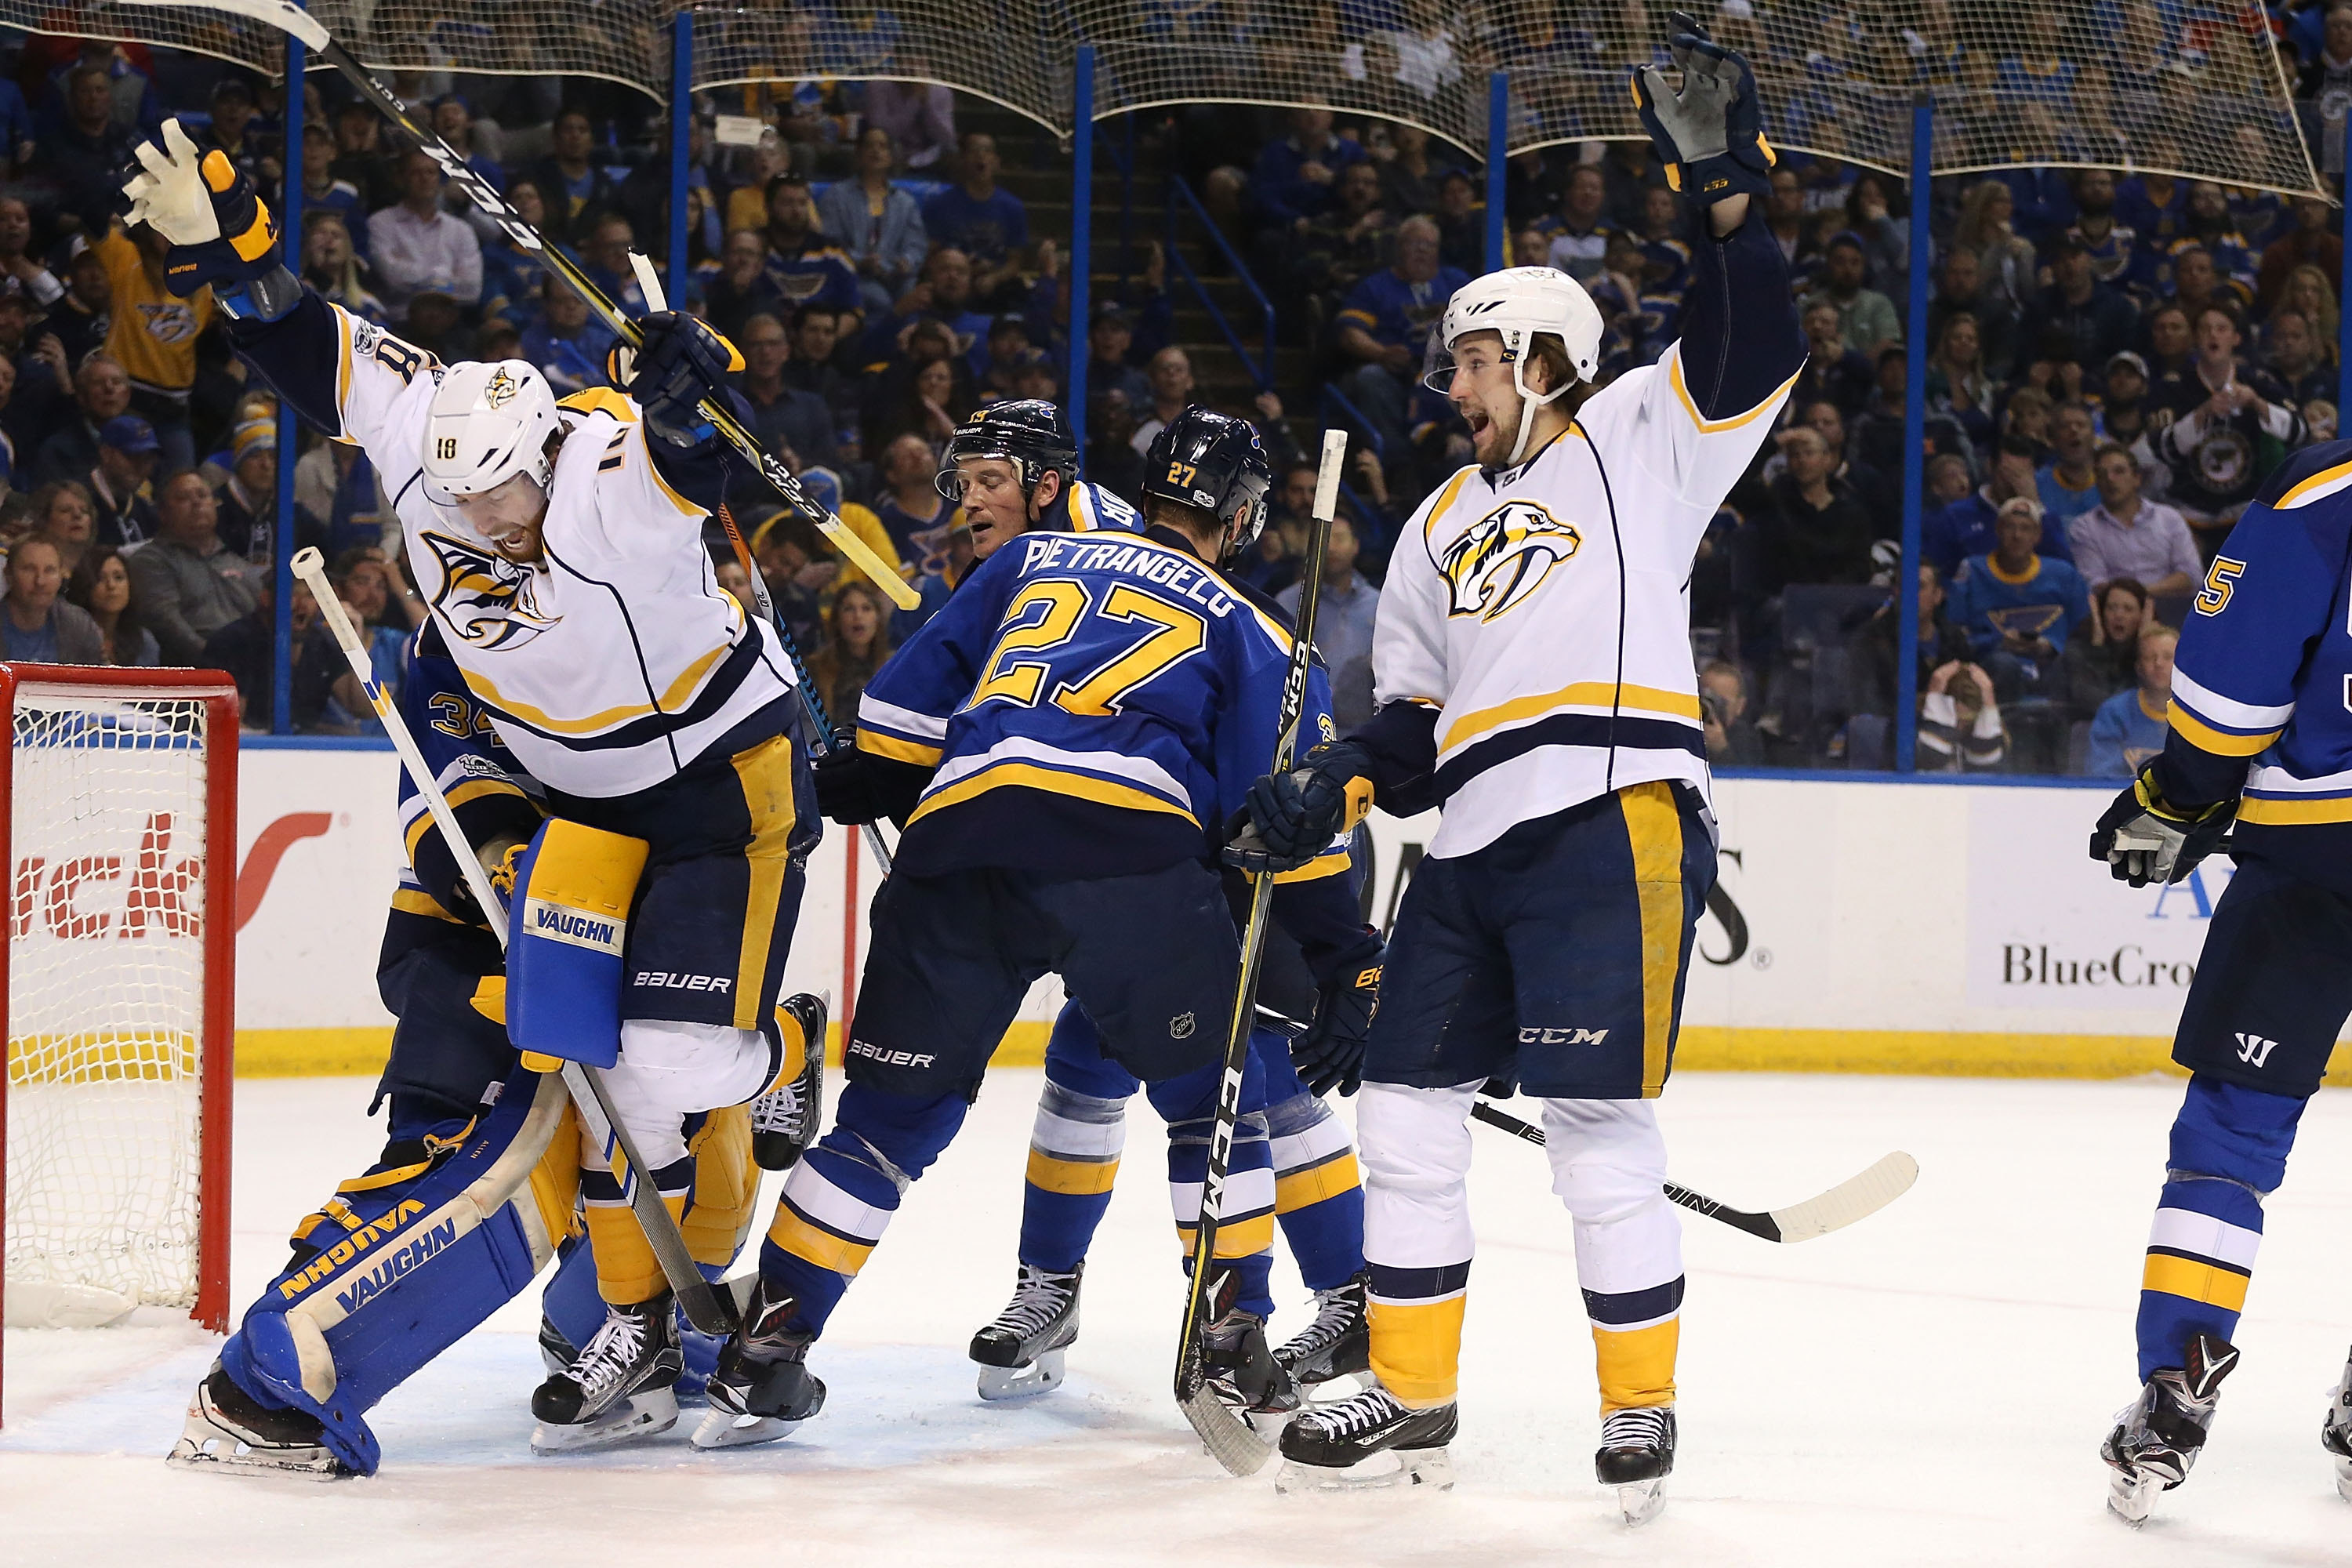 The Buffalo market doesn't have a home team to cheer for in the playoffs, but fans are still tuning in for games like this one between the Nashville Predators and the St. Louis Blues. (Dilip Vishwanat/Getty Images)